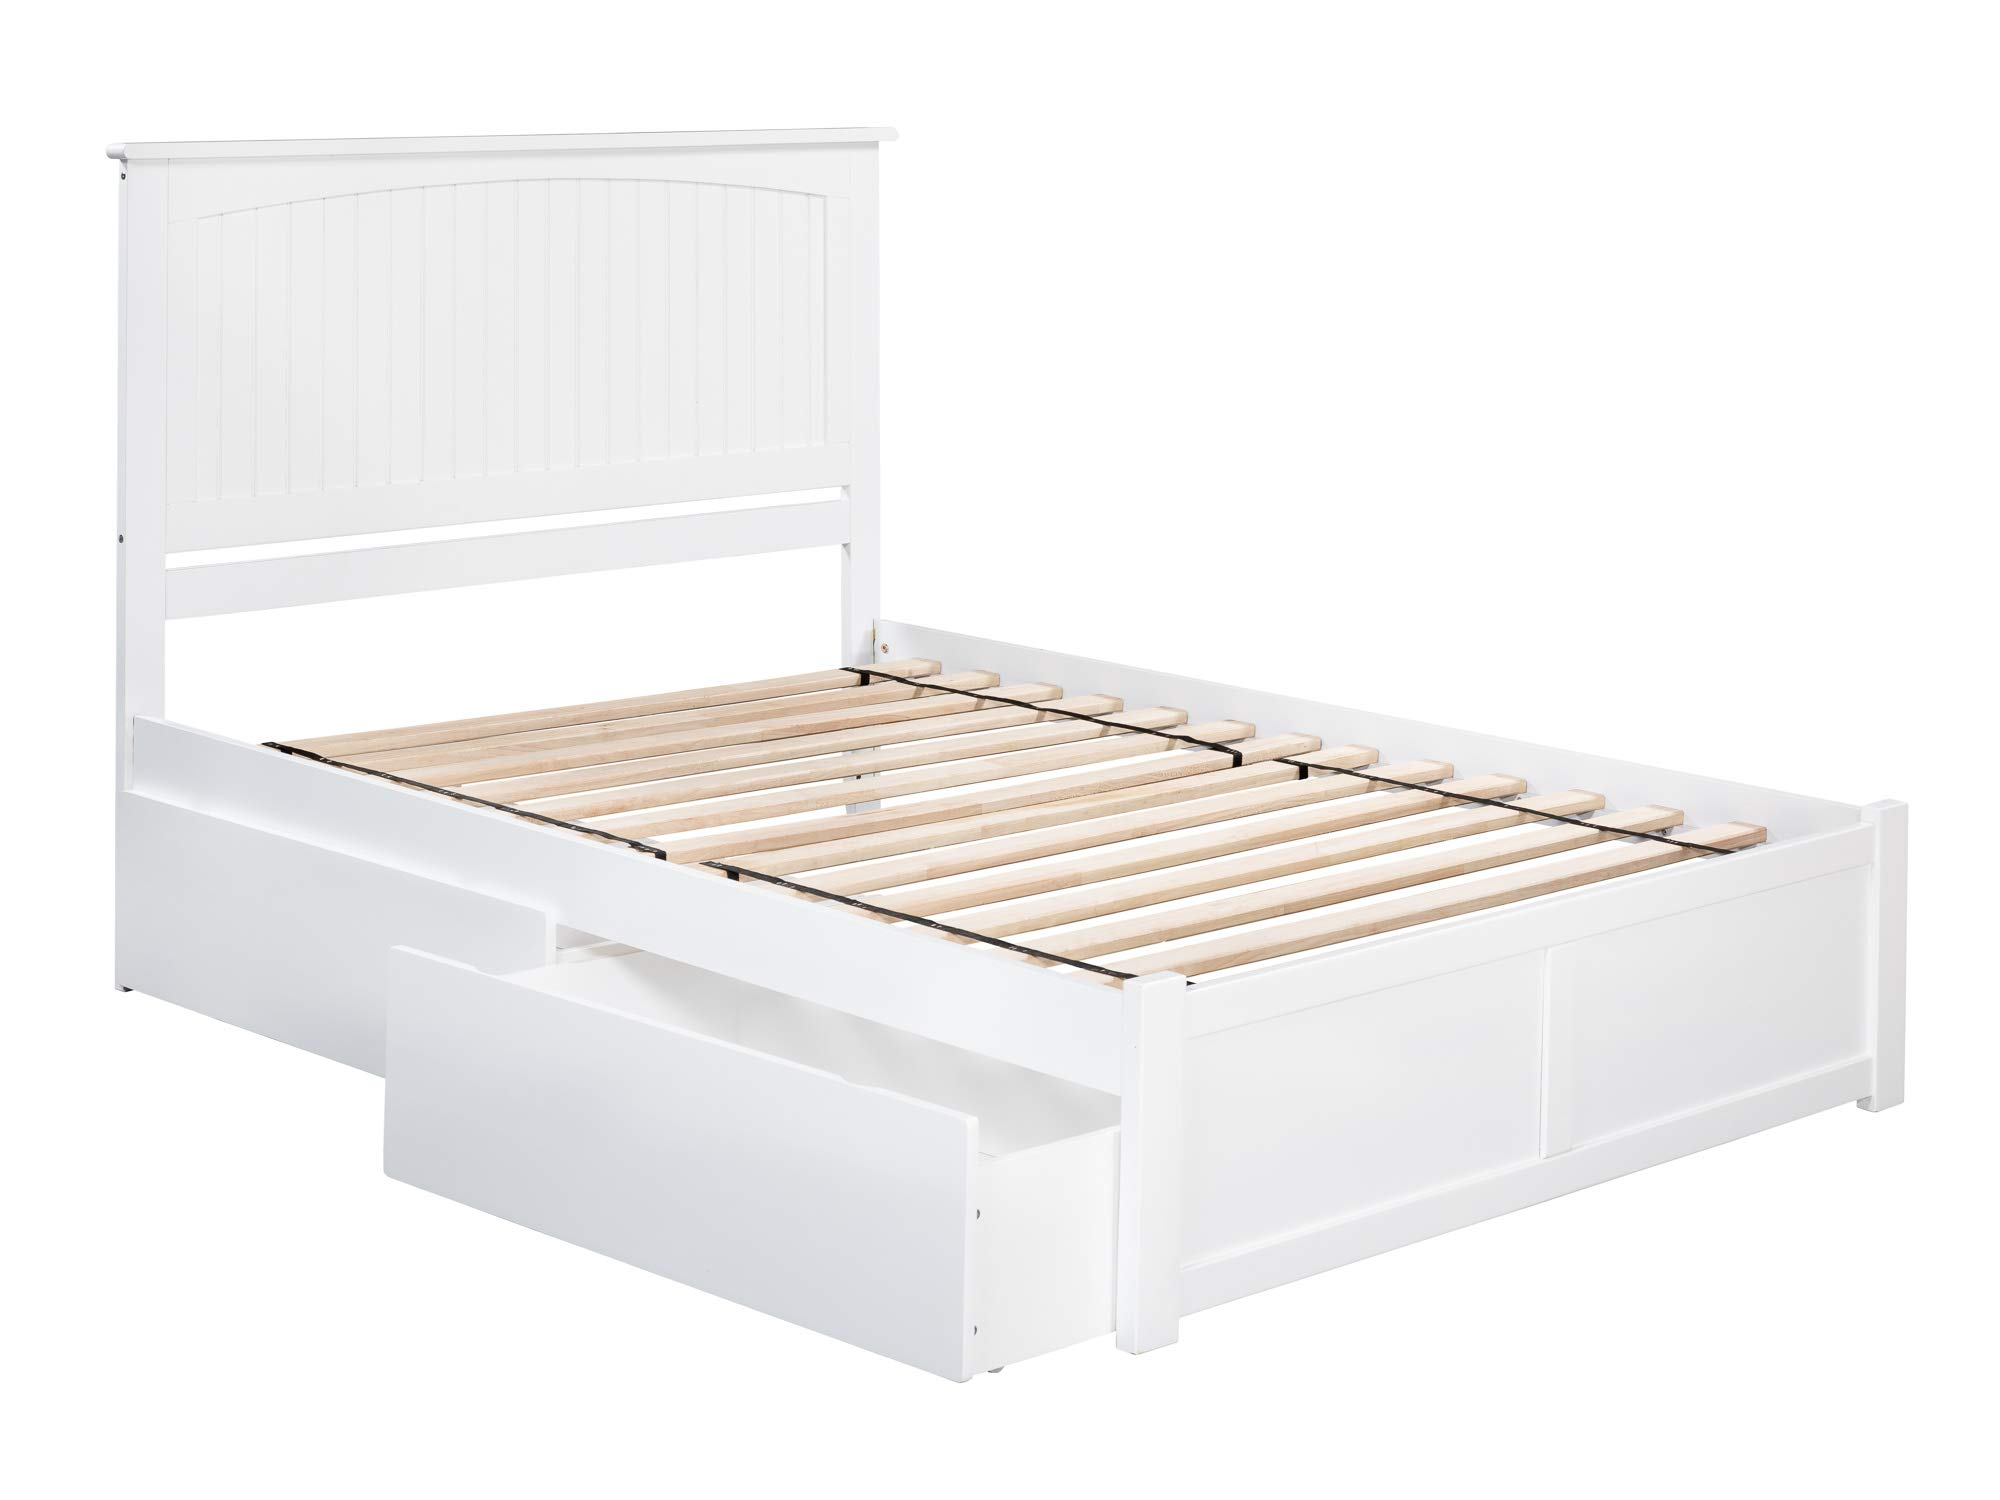 Atlantic Furniture AR8232112 Nantucket Platform Bed with 2 Urban Bed Drawers, Full, White